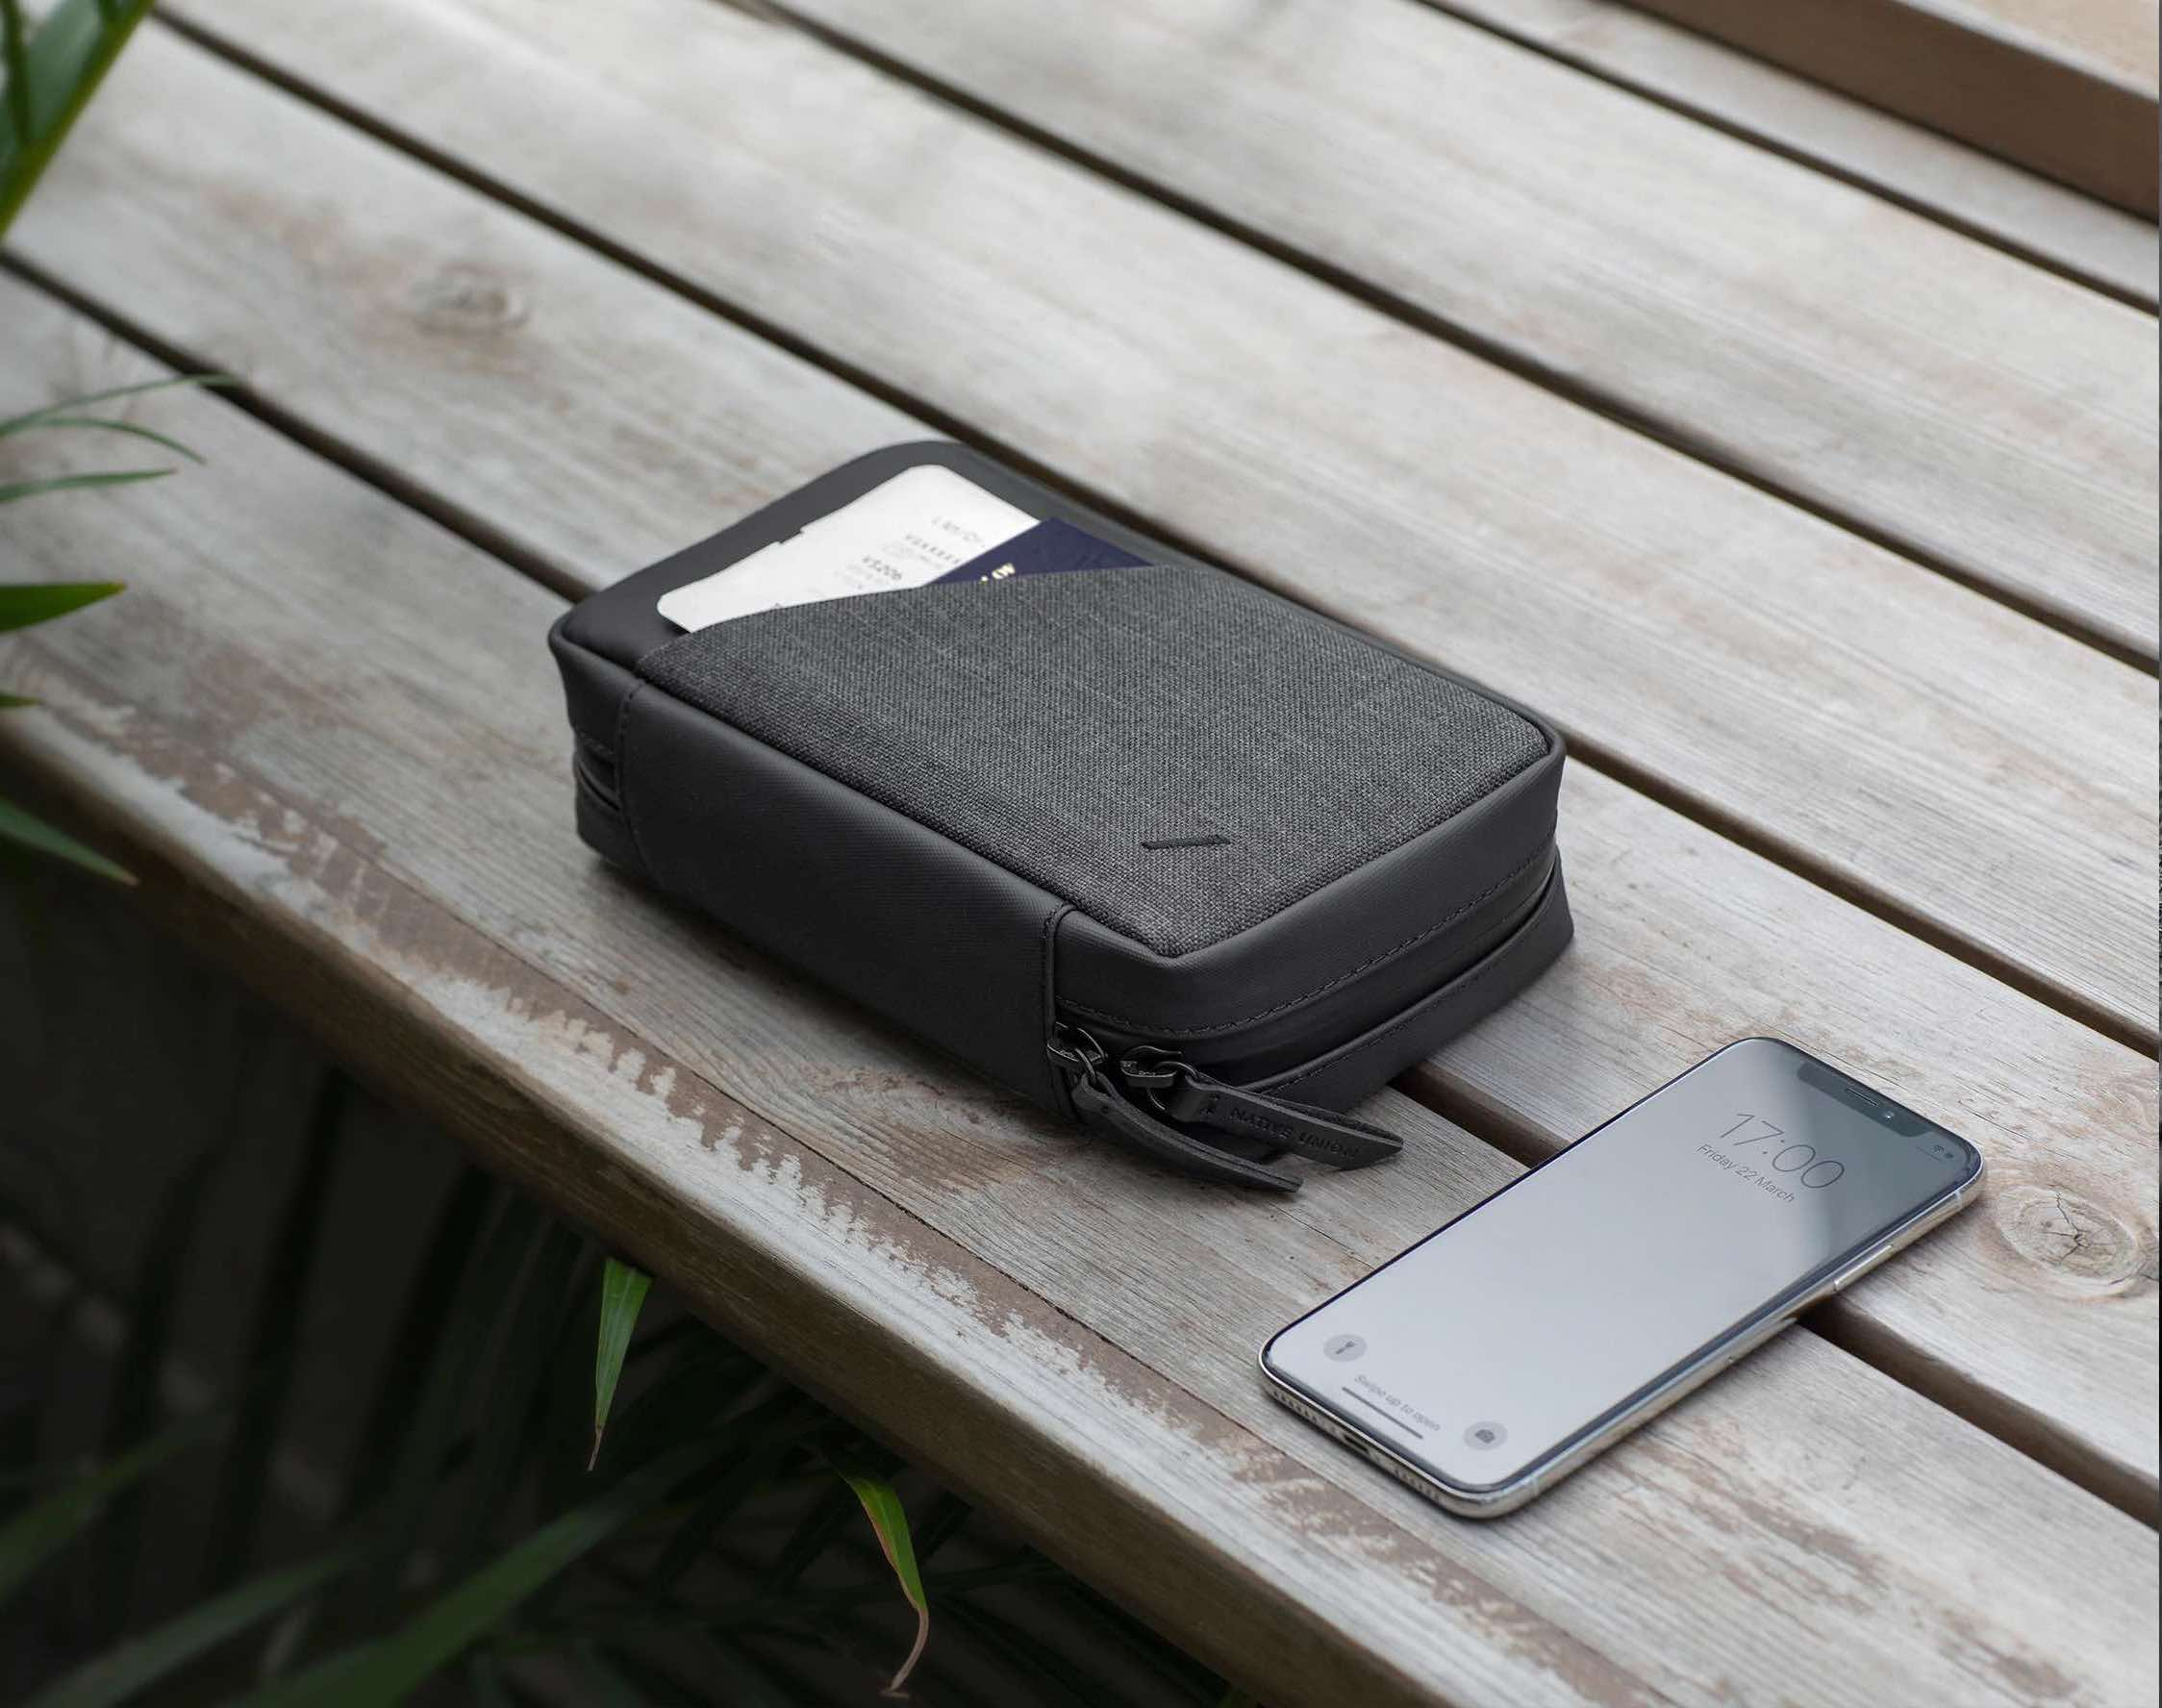 Native Union STOW Accessory Organizer helps you keep it all together